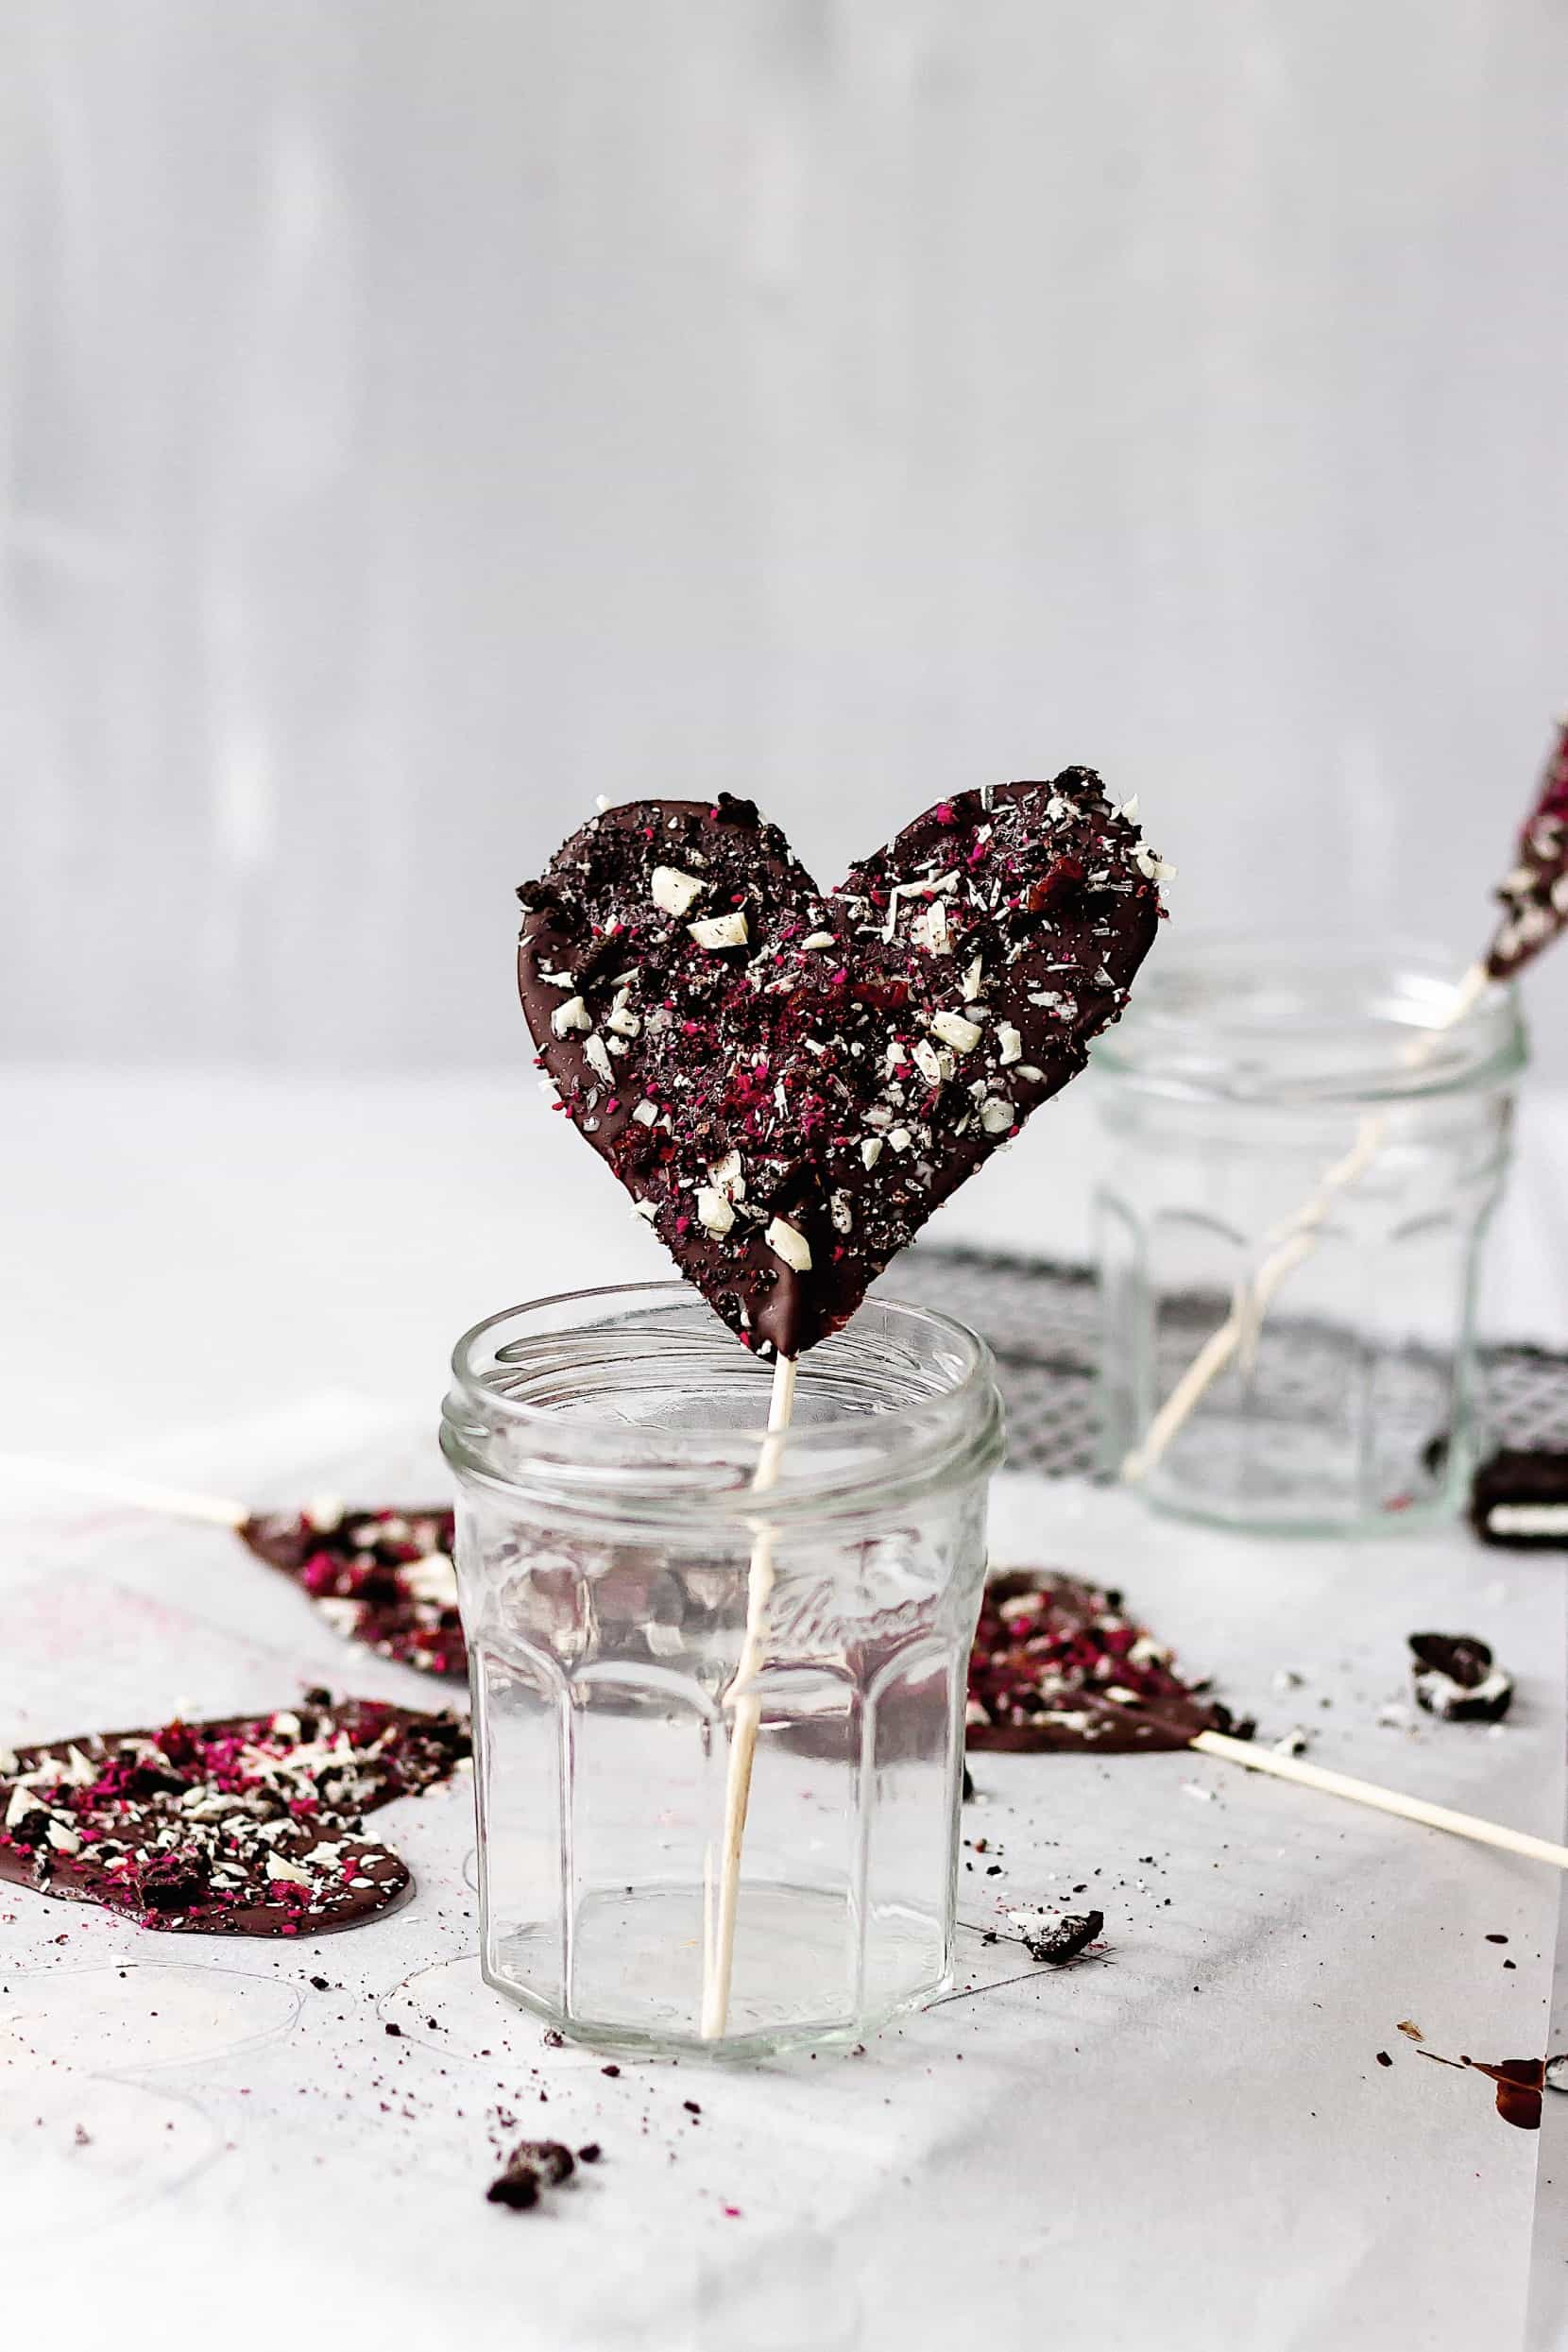 Vegan Chocolate Recipes: Chocolate Heart Lollipops